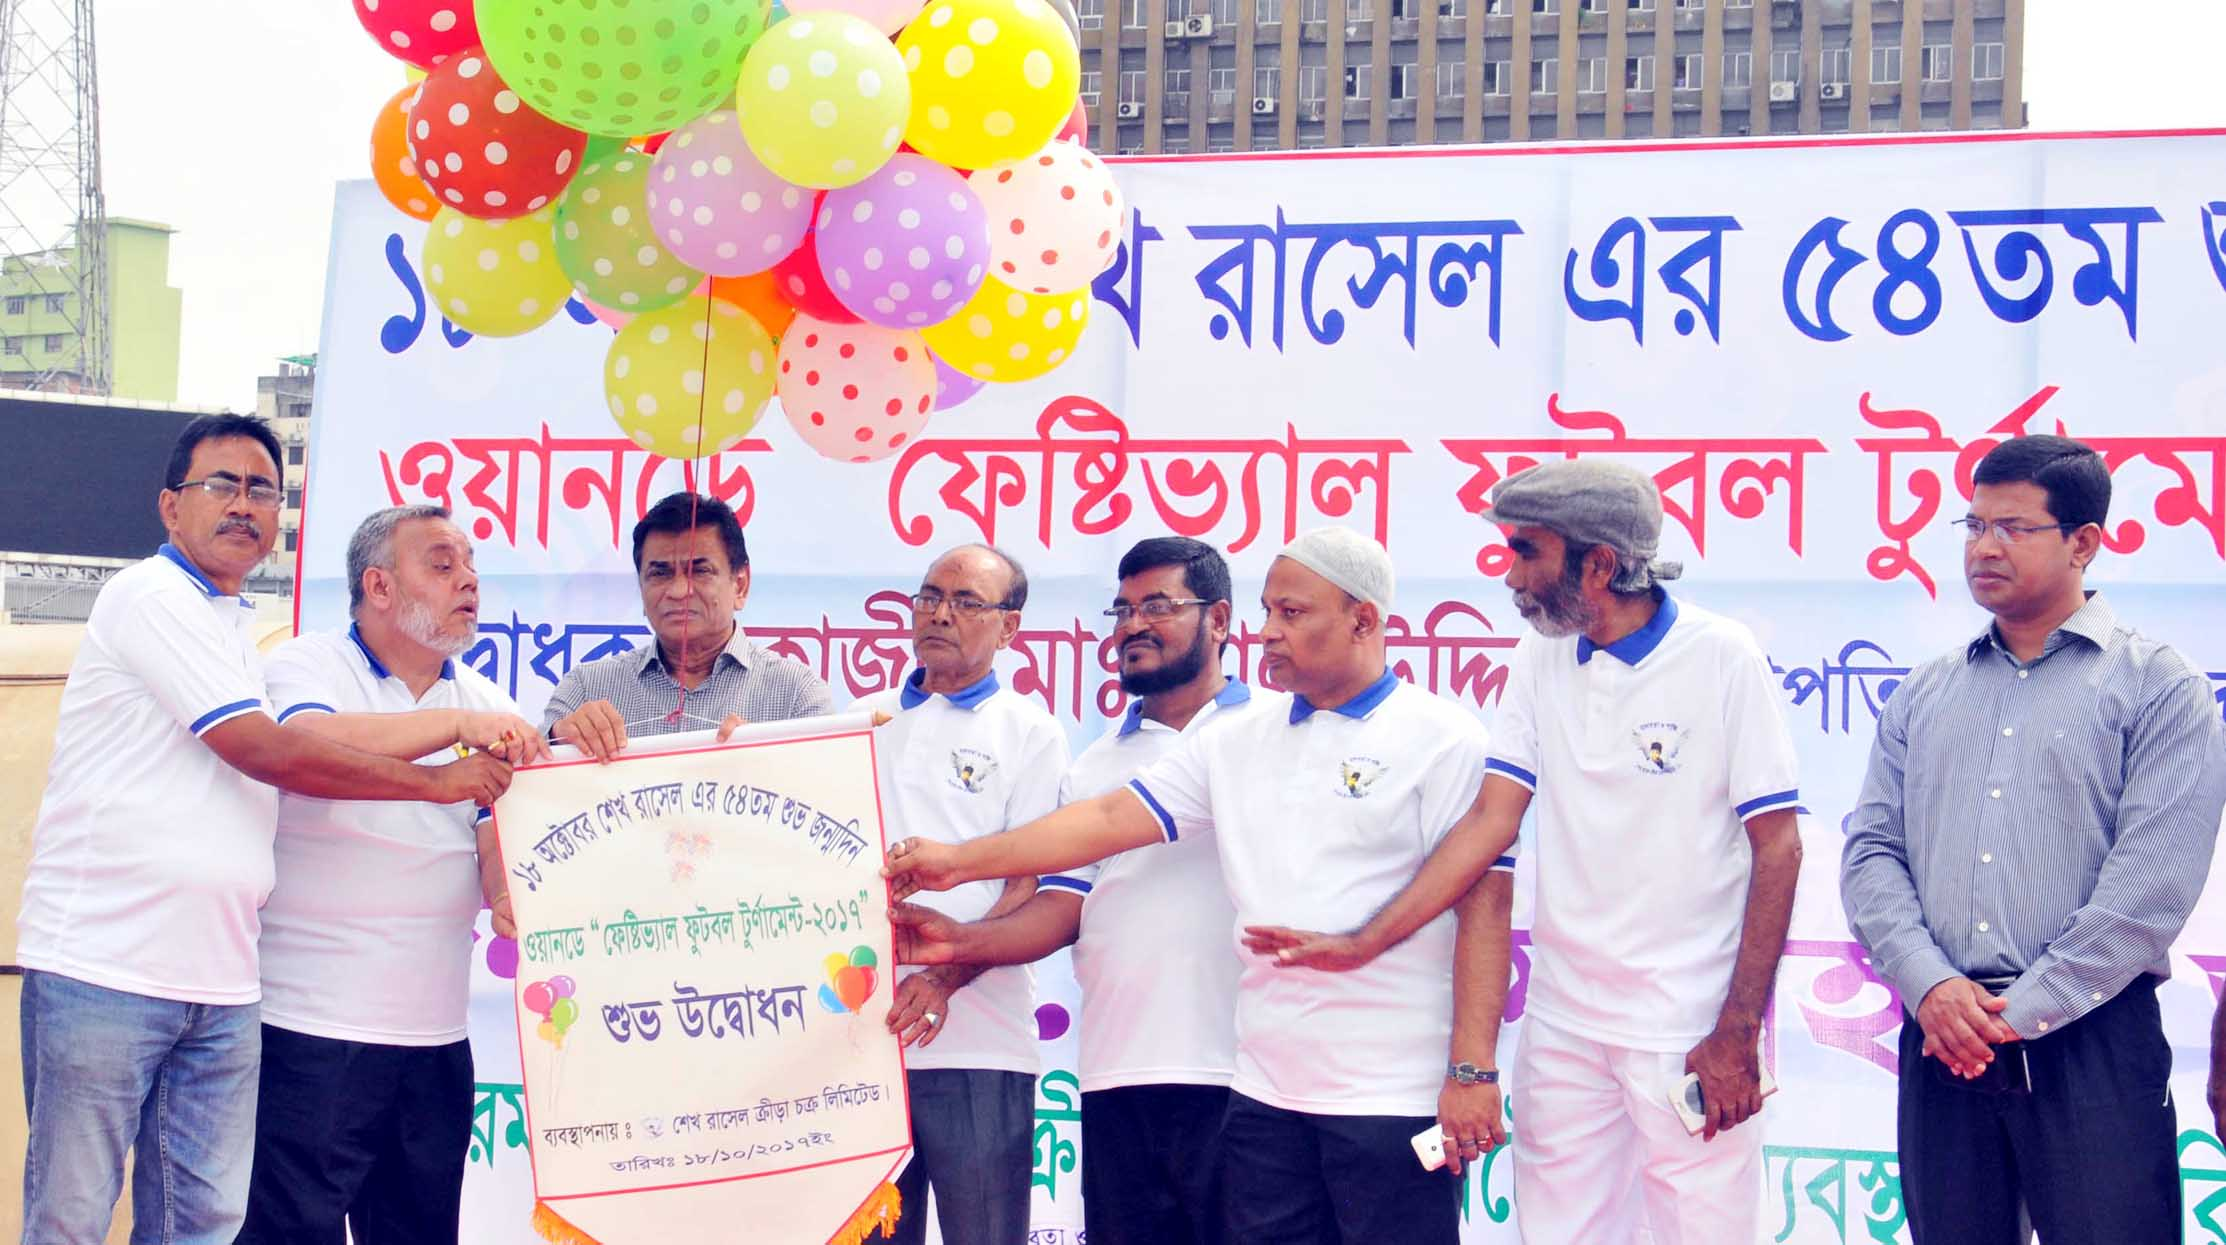 President of Bangladesh Football Federation Kazi Salahuddin inaugurating the One-Day Festival Football Tournament marking the 54th Birth Anniversary of Sheikh Russel, by releasing the balloons as the chief guest at the Bangabandhu National Stadium on Wednesday.